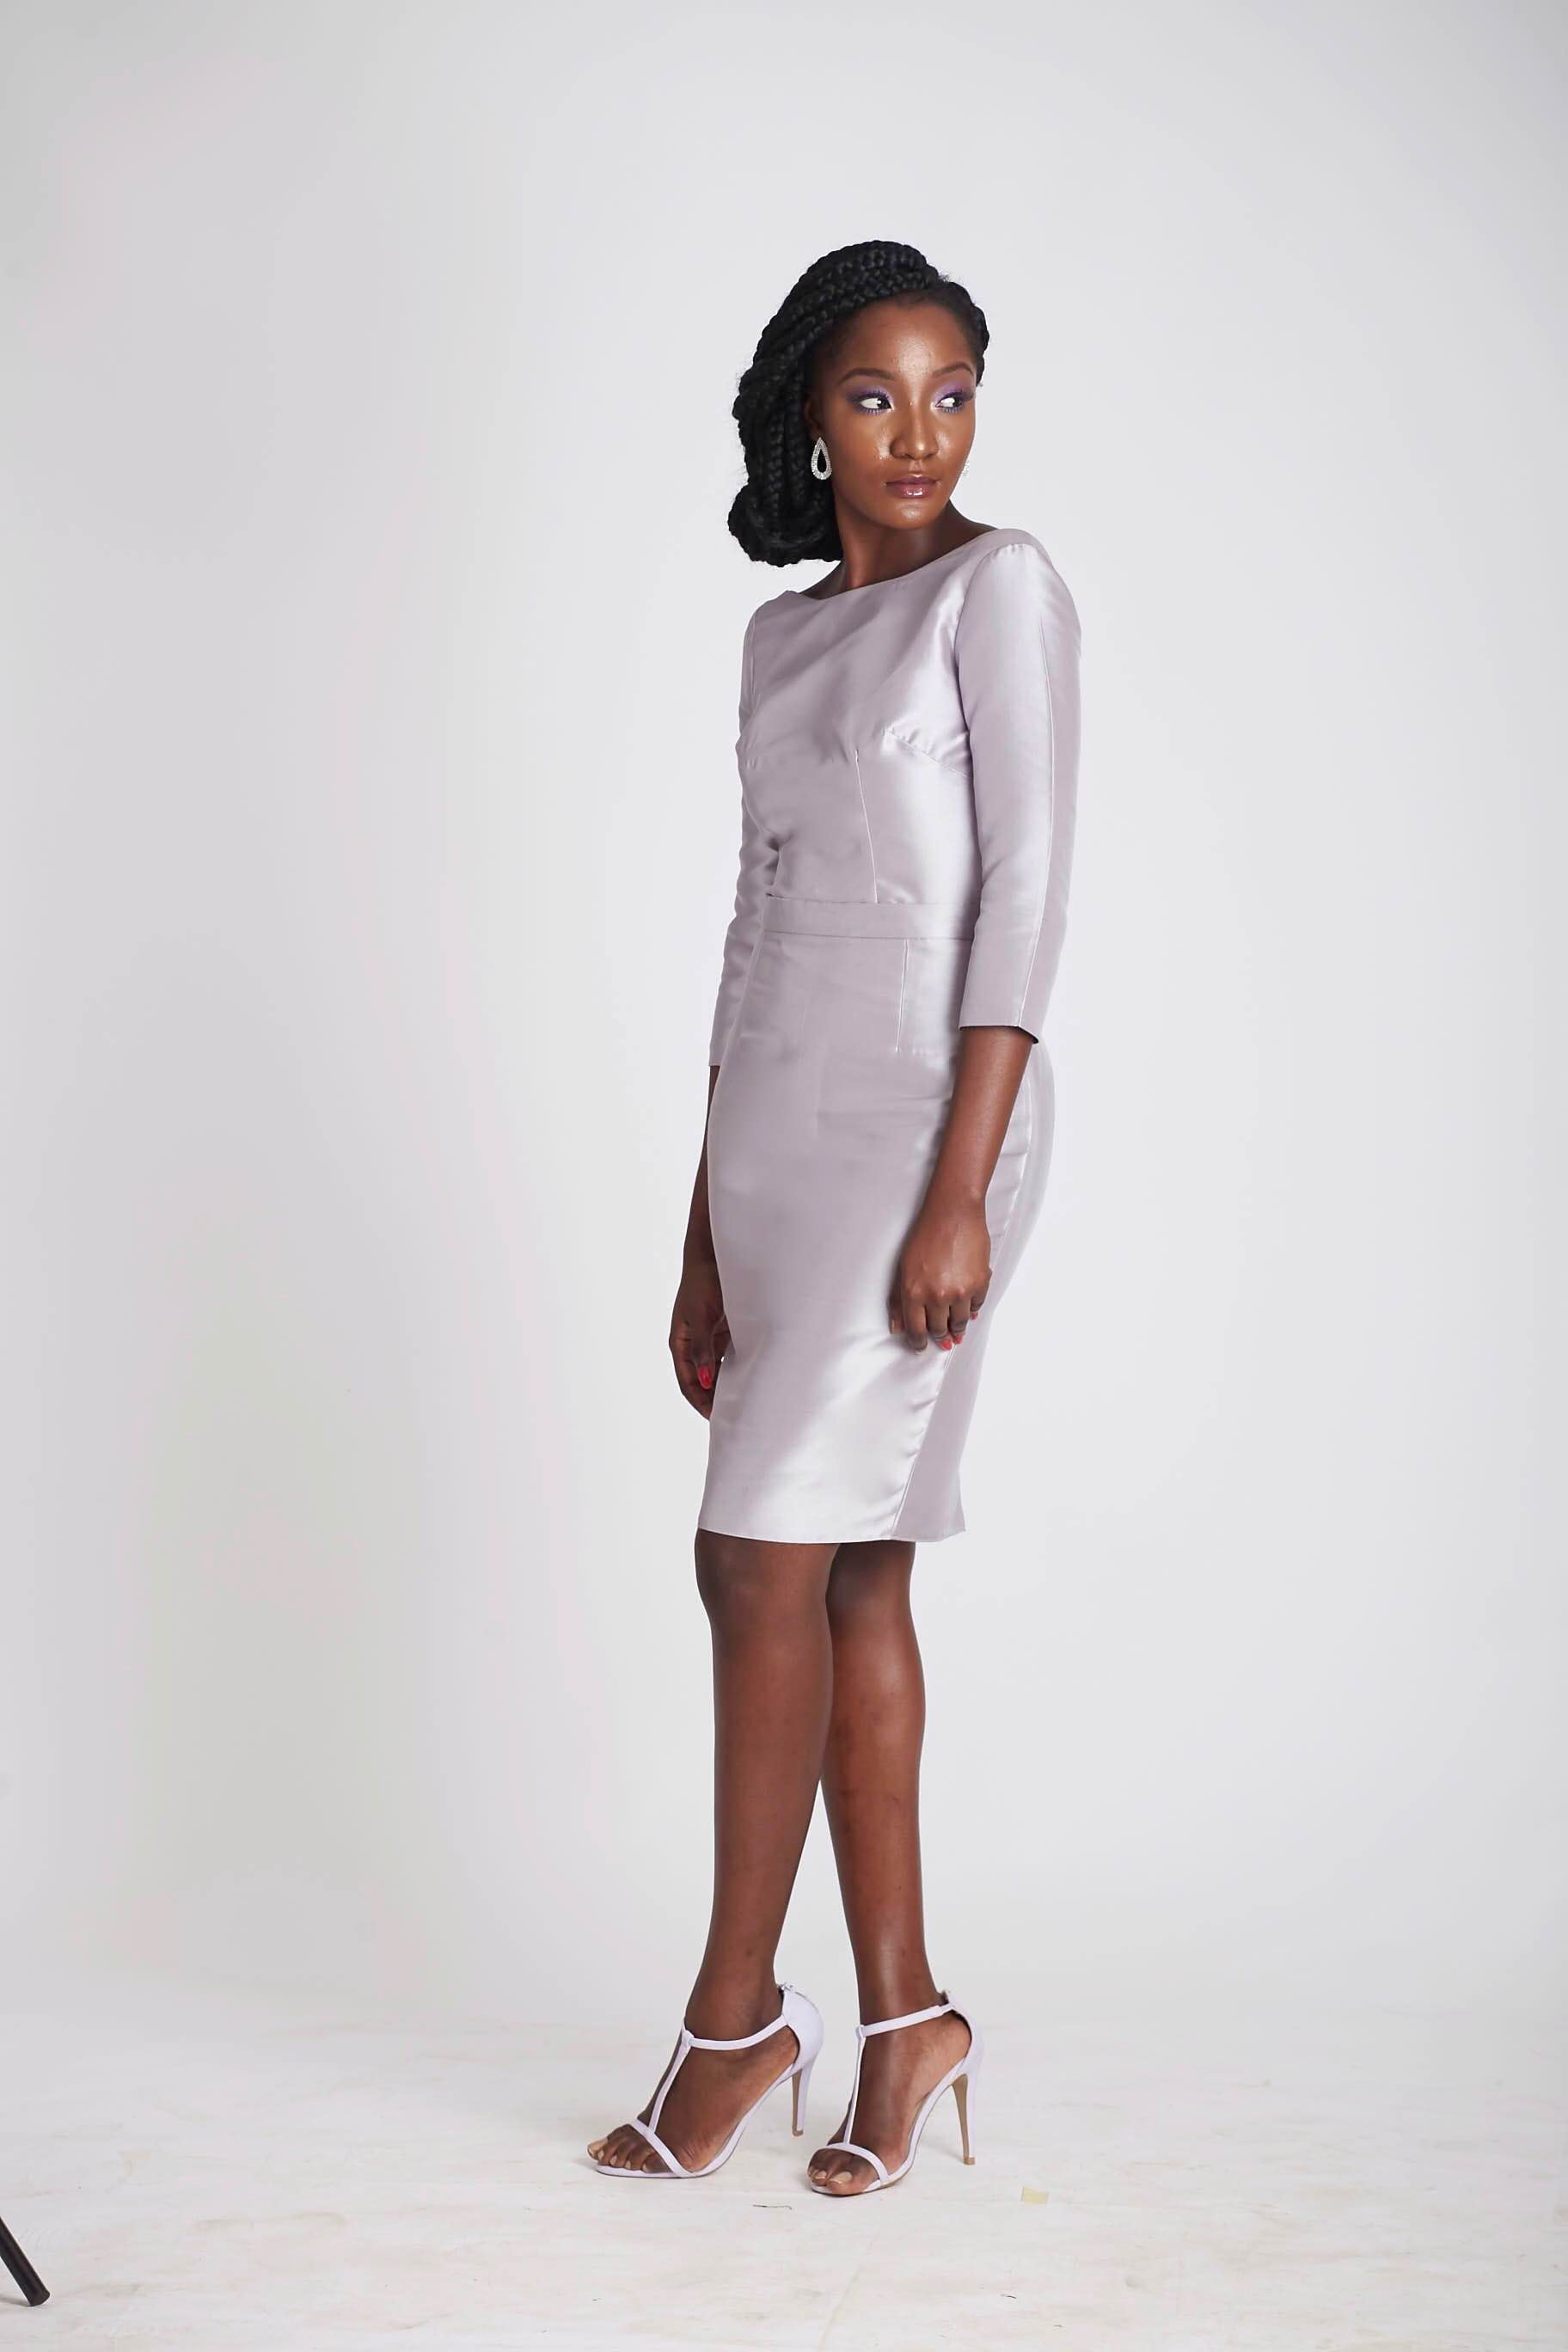 Imad Eduso - BN Style - Collection Lookbook - BellaNaija.com 029